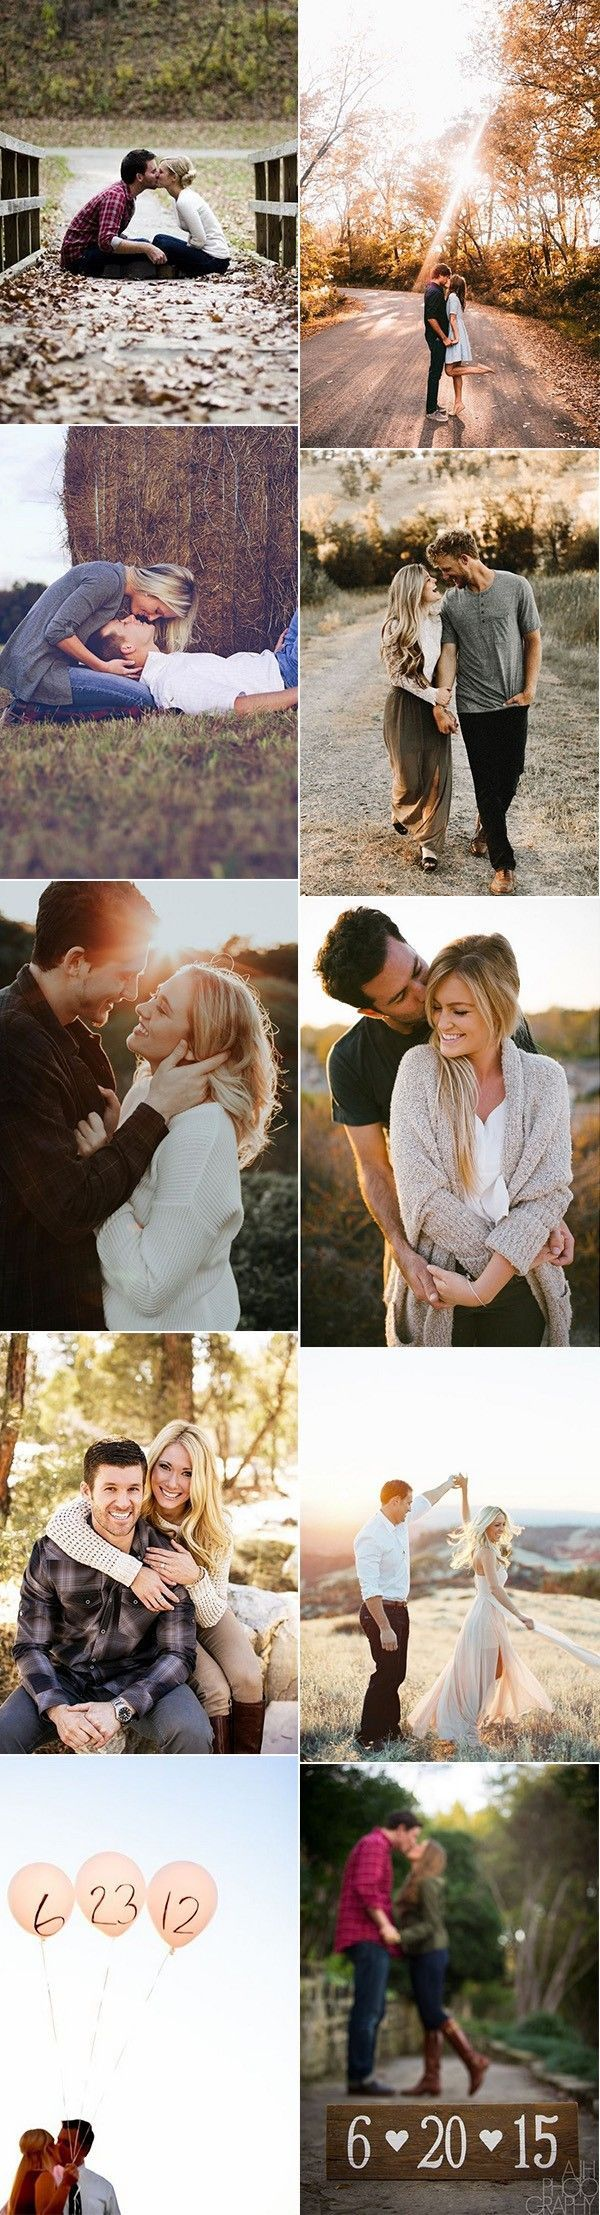 Top 20 Engagement Photo Ideas to Love